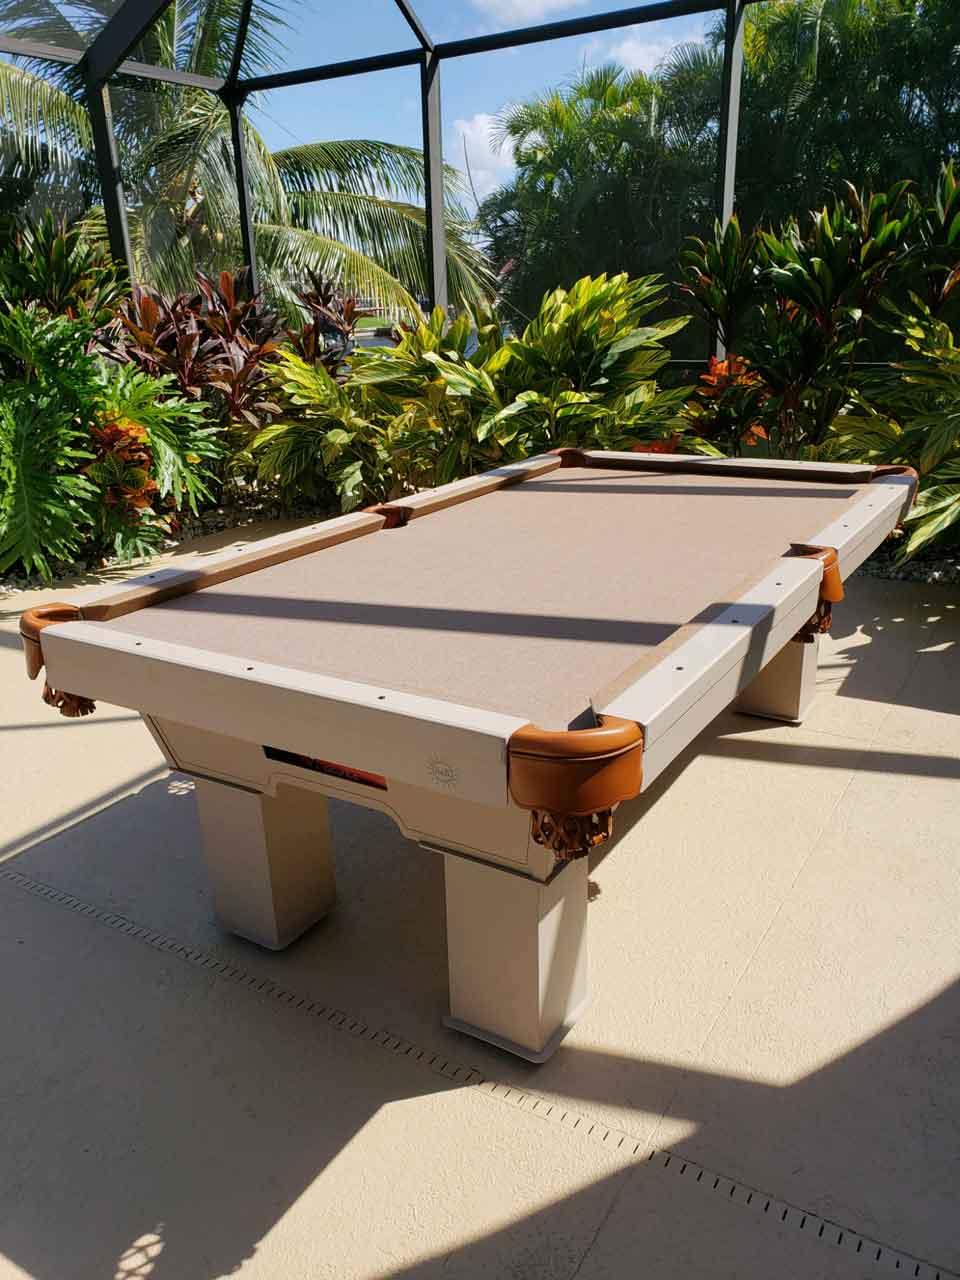 Beige & Brown Caesar Custom Outdoor Pool Table in Client's Southwest Florida Lanai from R&R Outdoors, Inc. All Weather Billiards